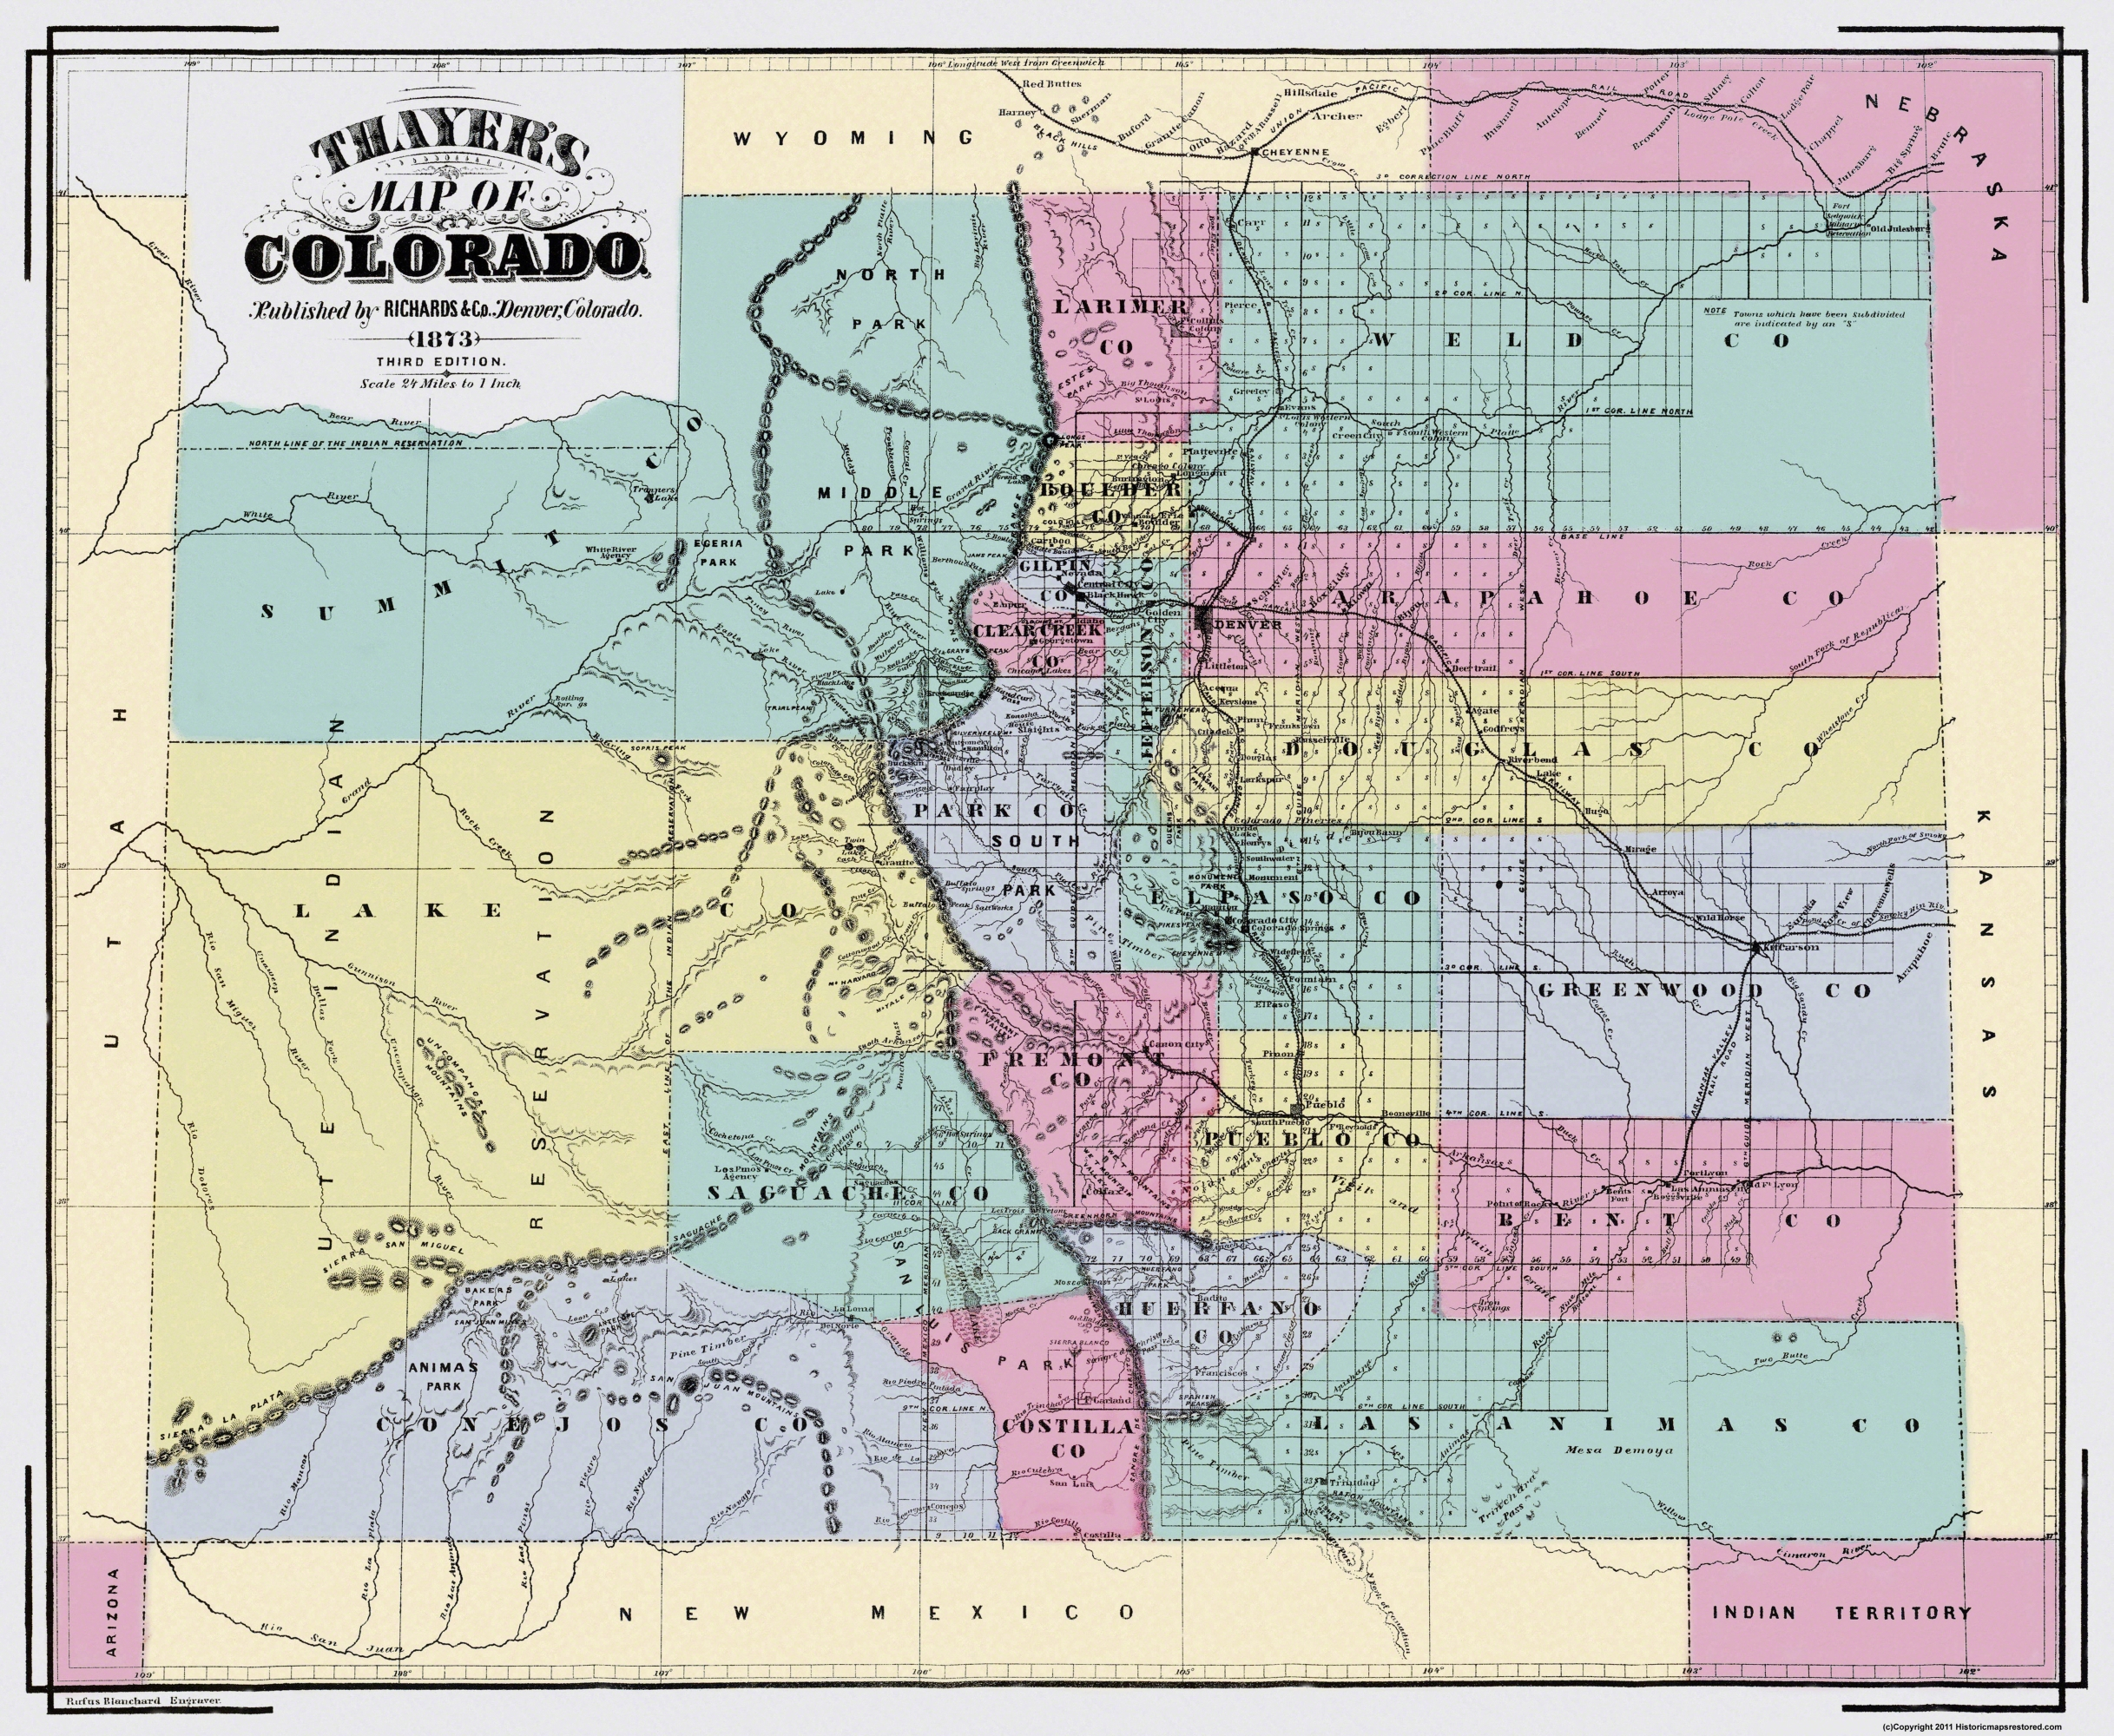 Old State Map - Colorado Territory - Richards 1873 - 28 x 23 on map of tincup colorado, map of lake granby colorado, map of clear creek county colorado, map of san isabel colorado, map of wetmore colorado, map of aguilar colorado, map of keenesburg colorado, map of gunbarrel colorado, map of silver plume colorado, map of green mountain falls colorado, map of battlement mesa colorado, map of stratton colorado, map of severance colorado, map of cherry hills village colorado, map of cheyenne colorado, map of las animas county colorado, map of arapahoe basin colorado, map of monarch pass colorado, map of flagler colorado, map of arriba colorado,